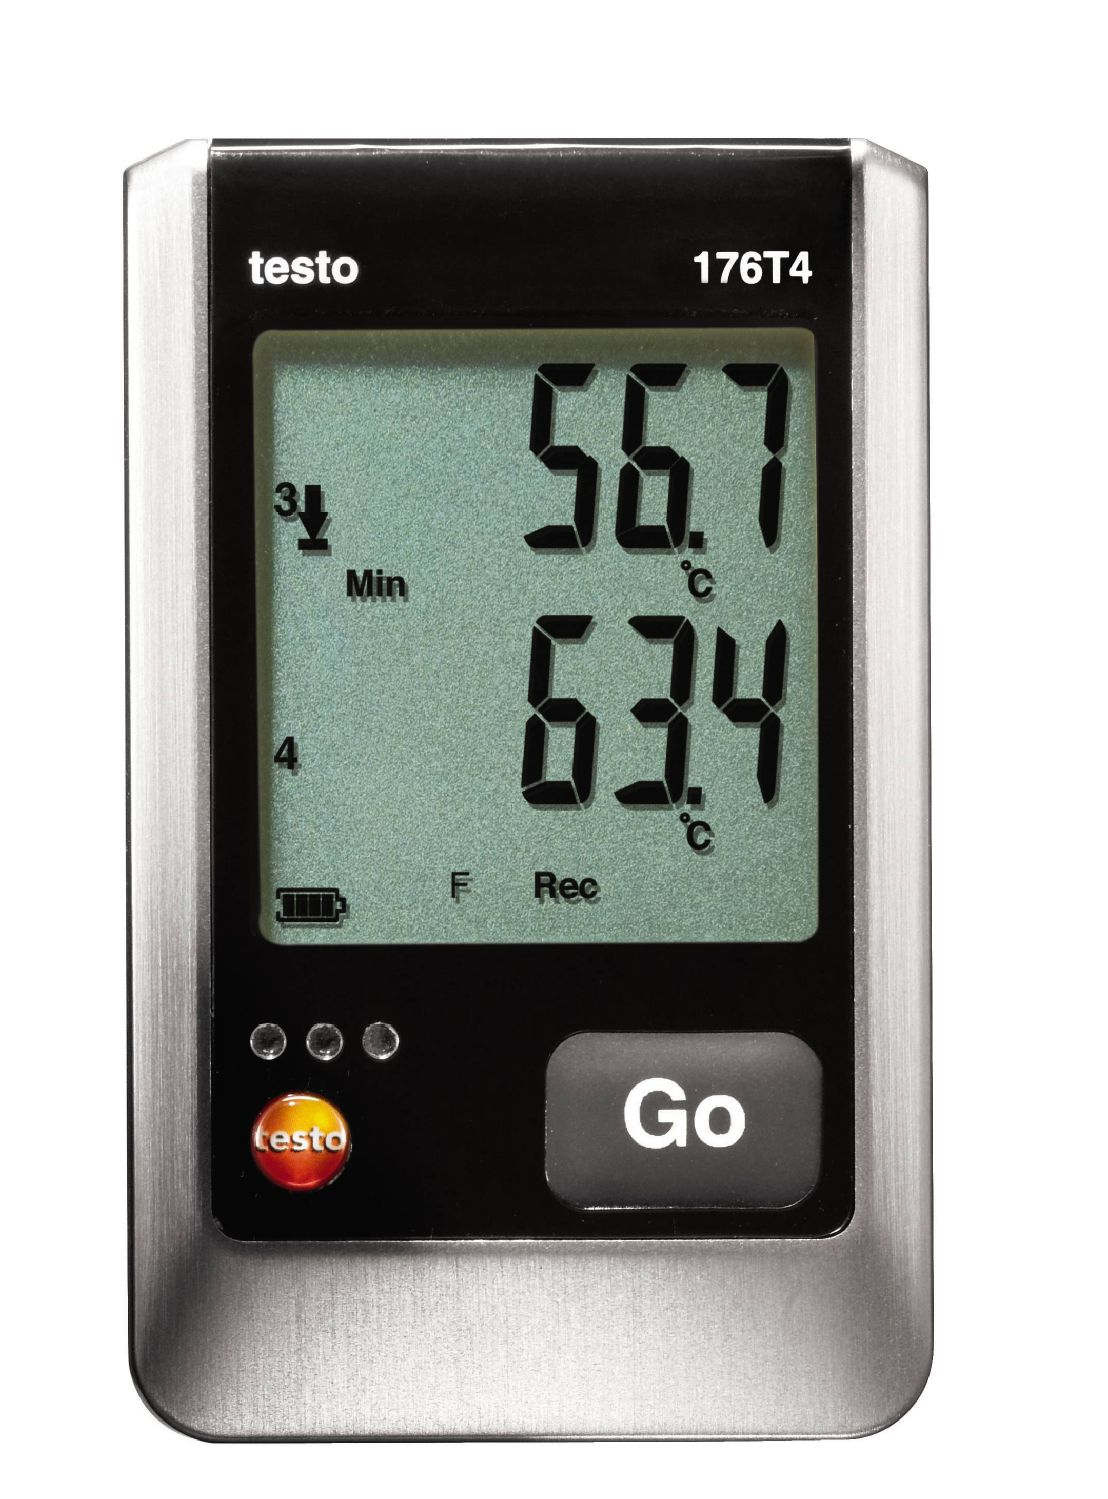 testo-176T4-instrument-temperature-001868.jpg